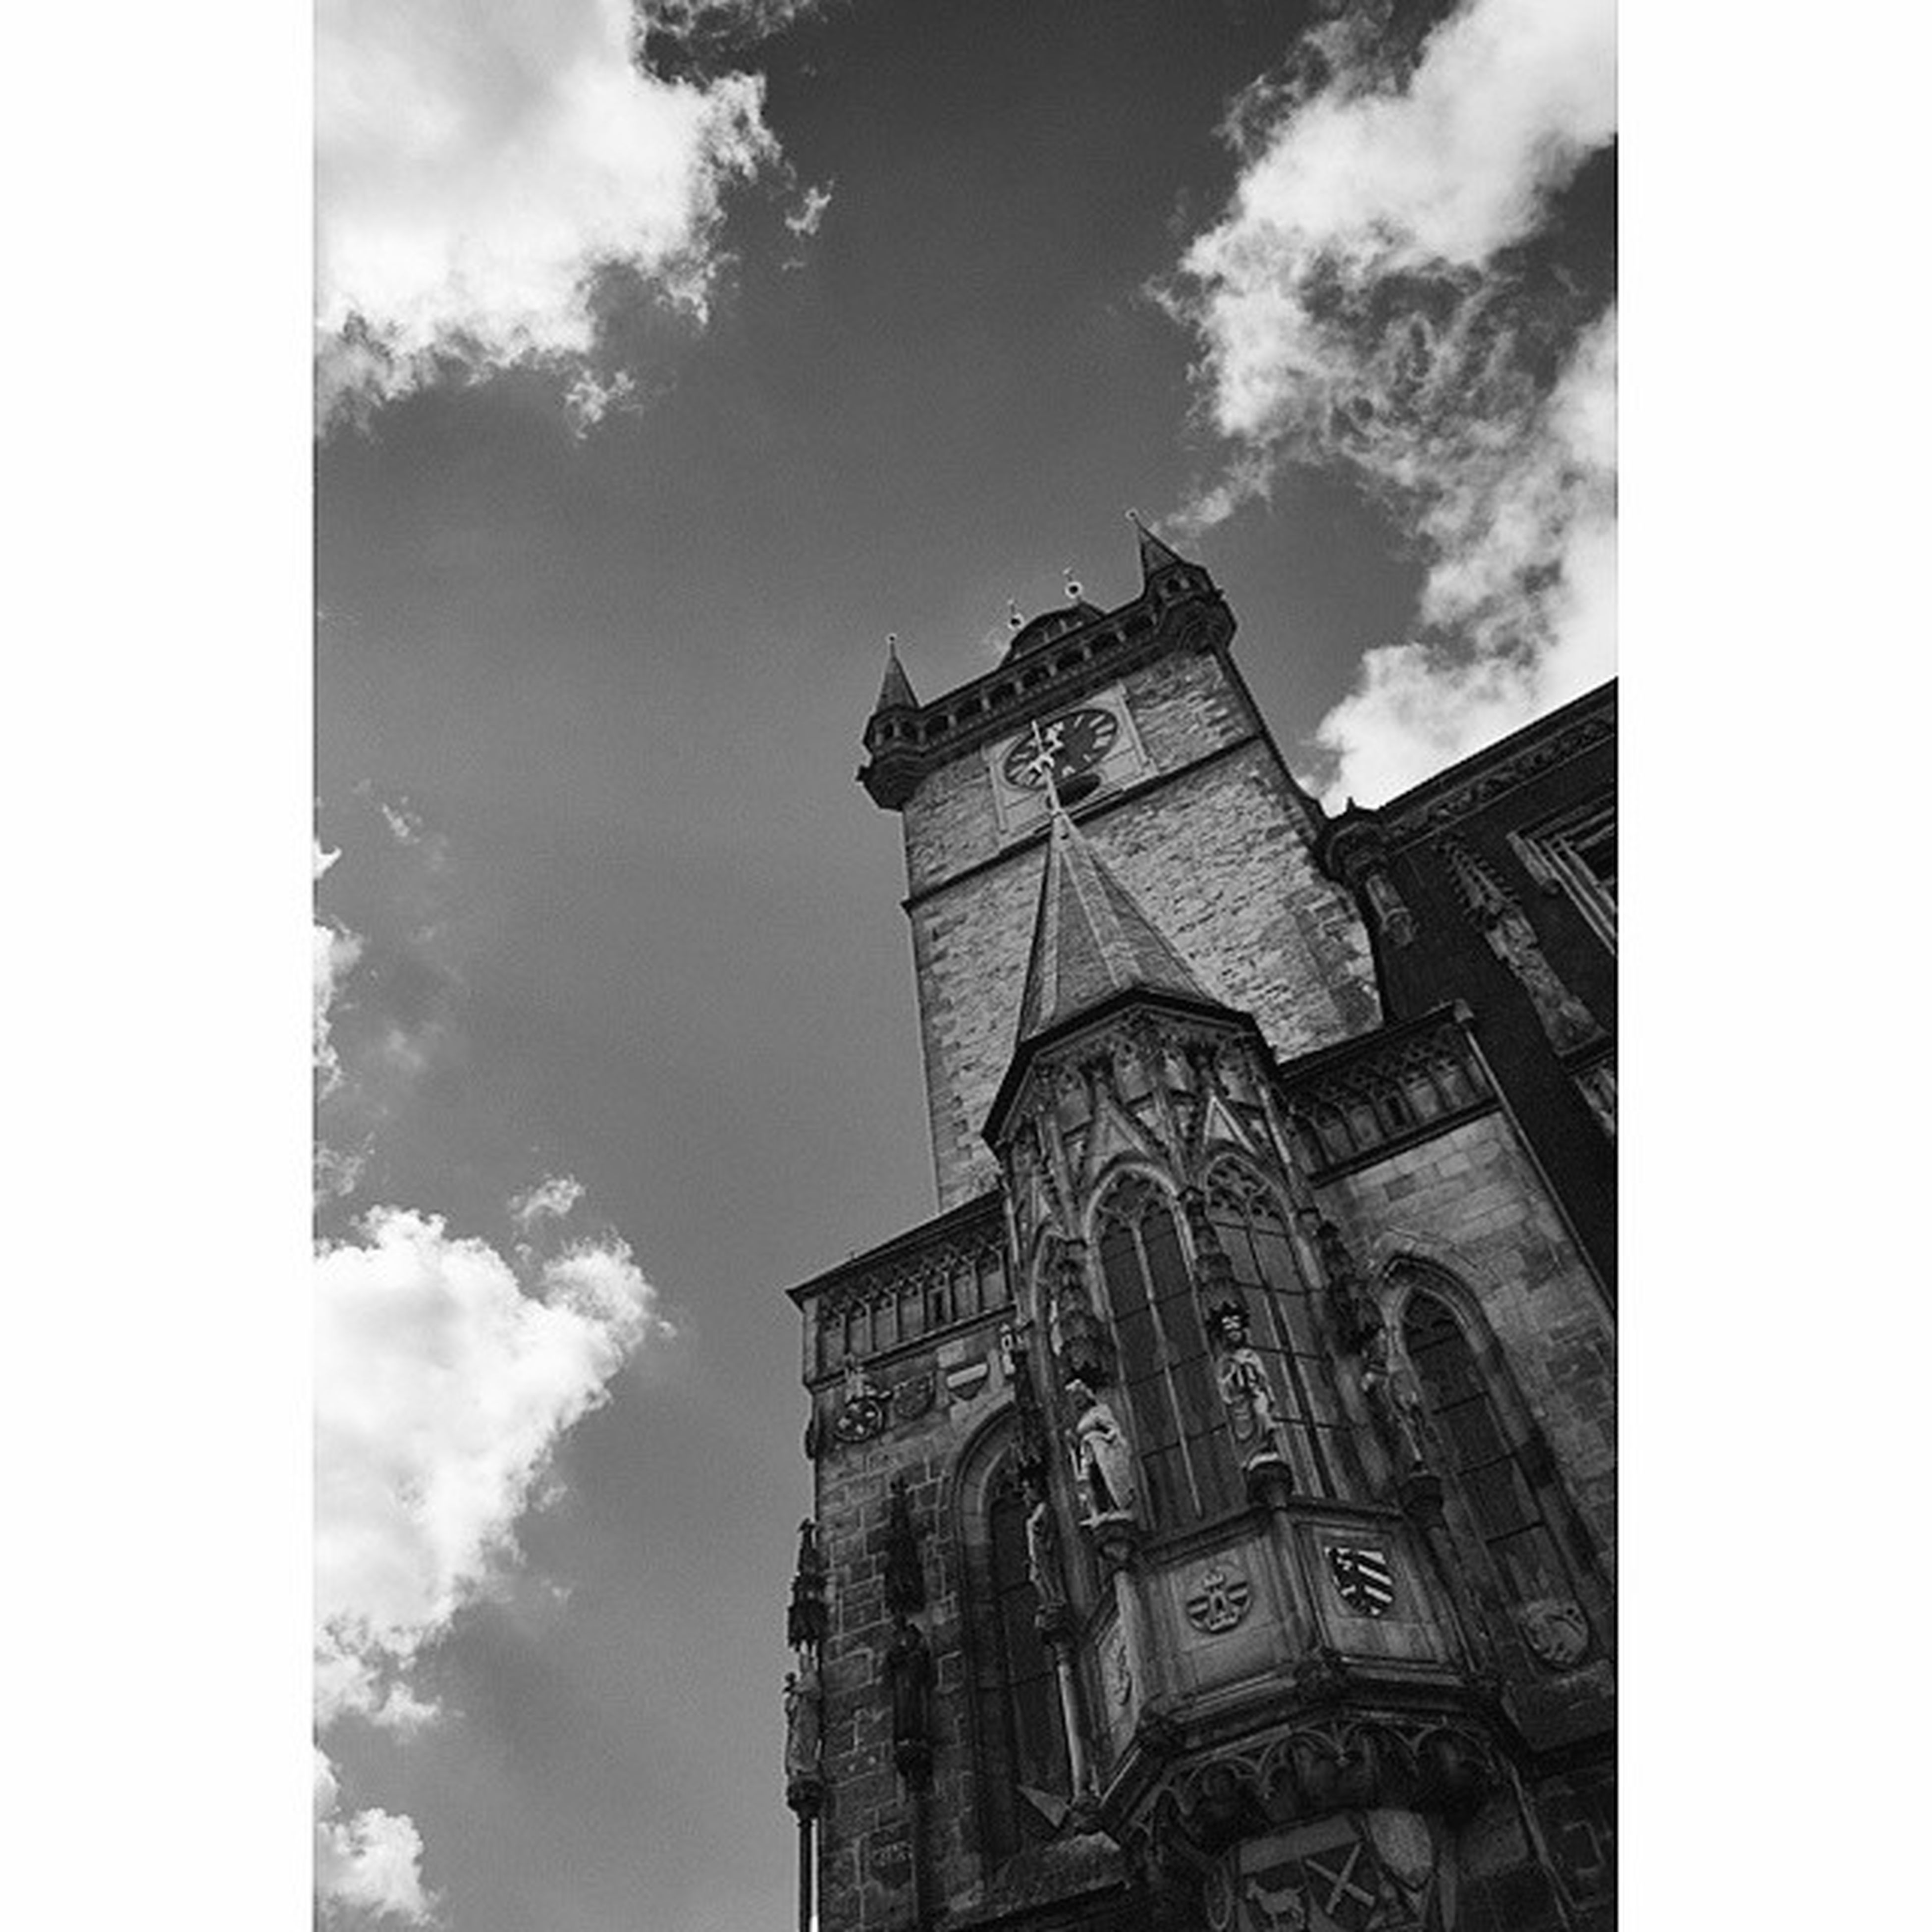 architecture, building exterior, built structure, religion, low angle view, church, sky, place of worship, transfer print, spirituality, clock tower, history, tower, auto post production filter, cathedral, clock, cloud - sky, famous place